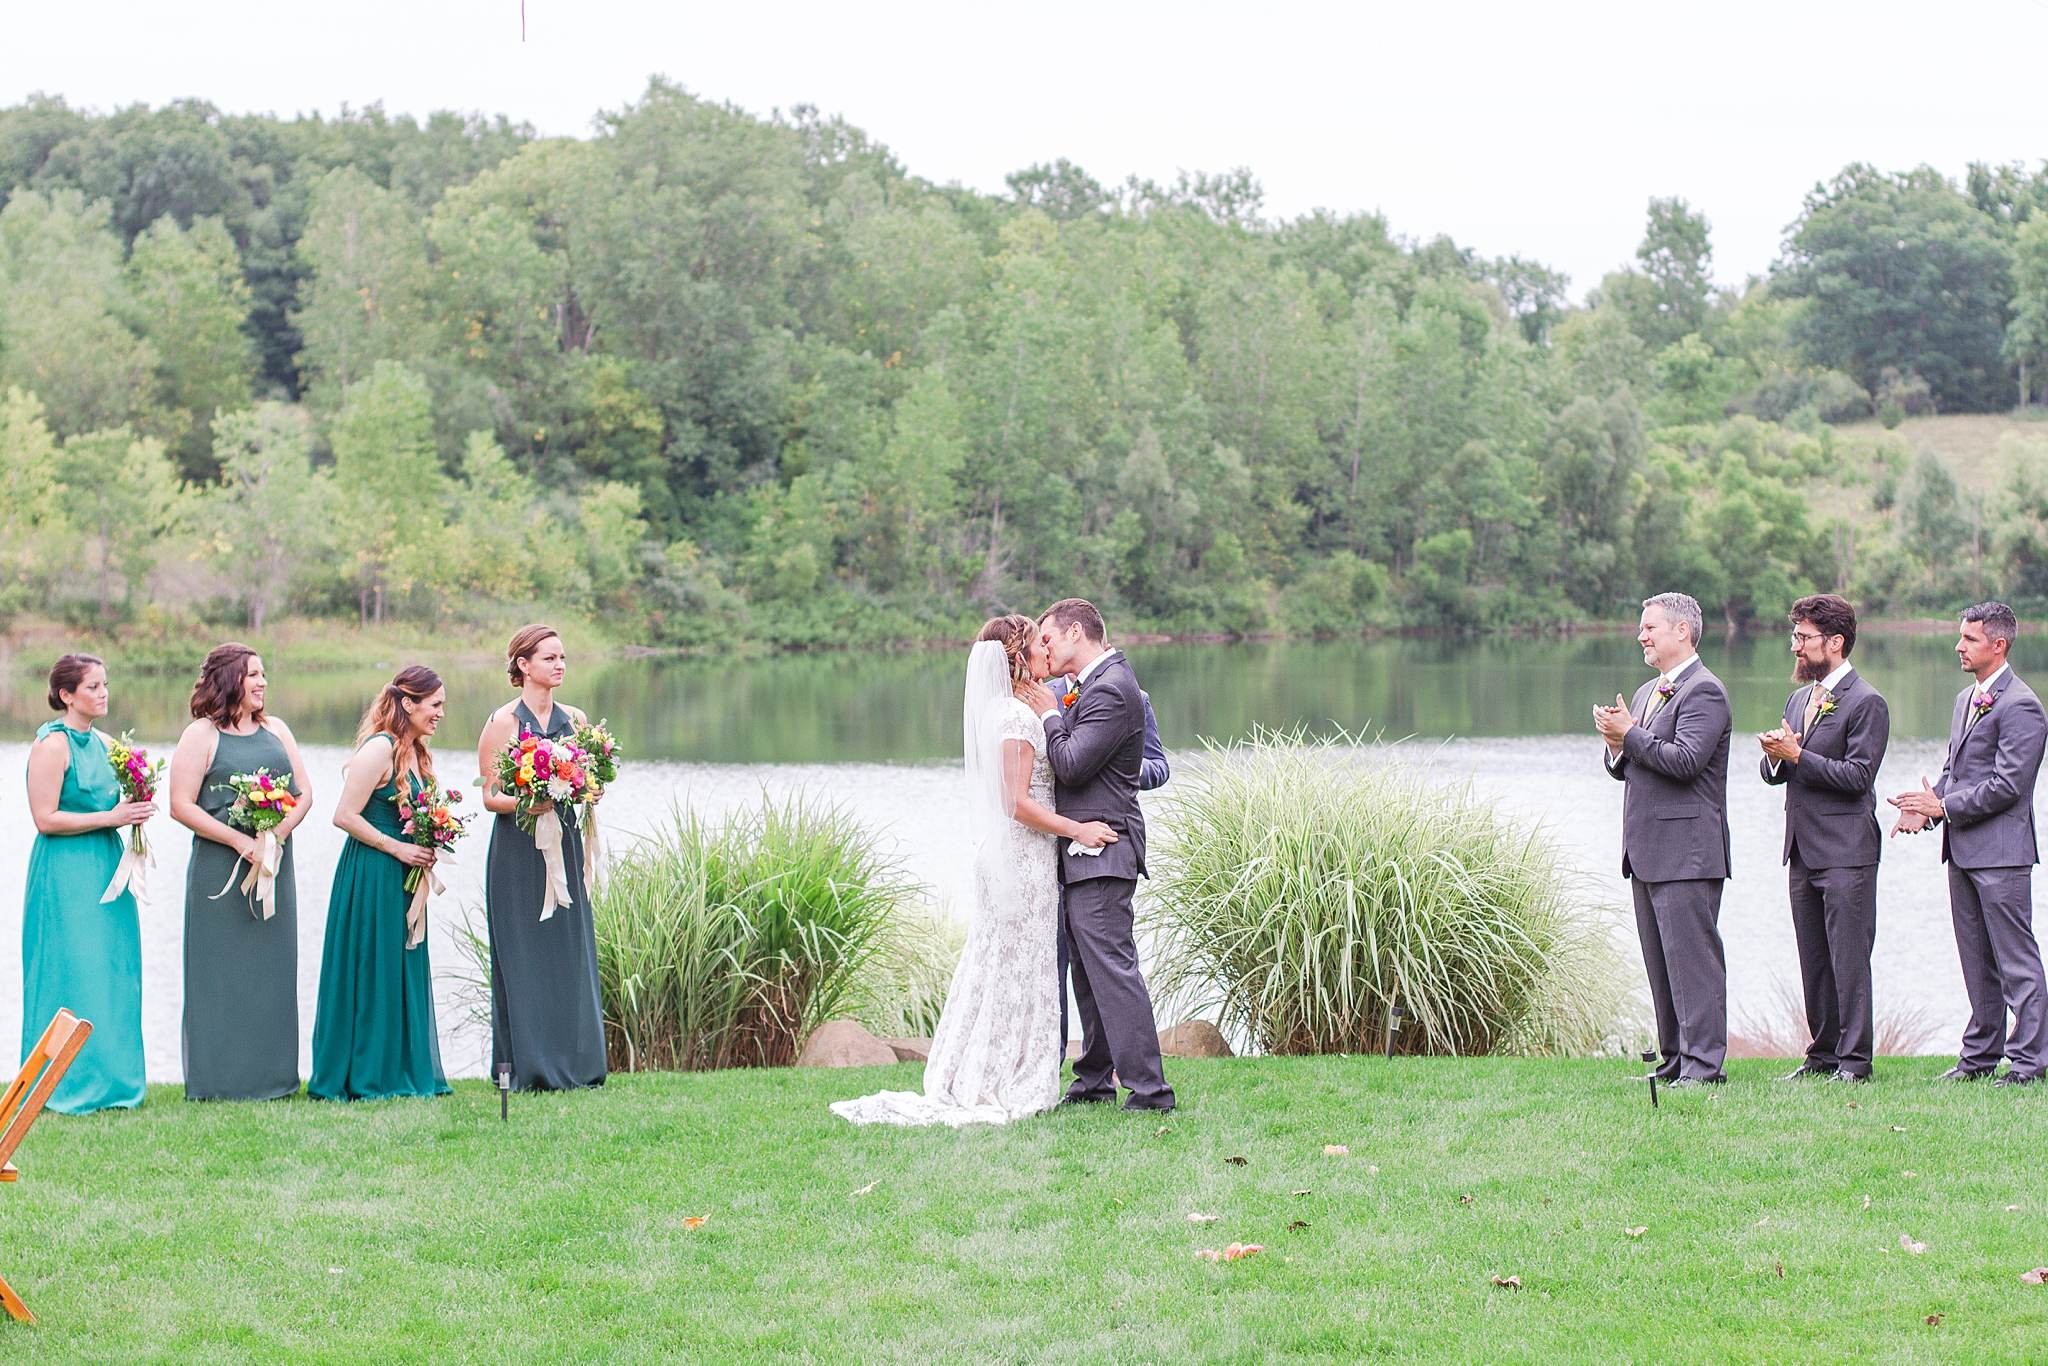 private-lakefront-estate-wedding-photography-in-ann-arbor-michigan-by-courtney-carolyn-photography_0025.jpg